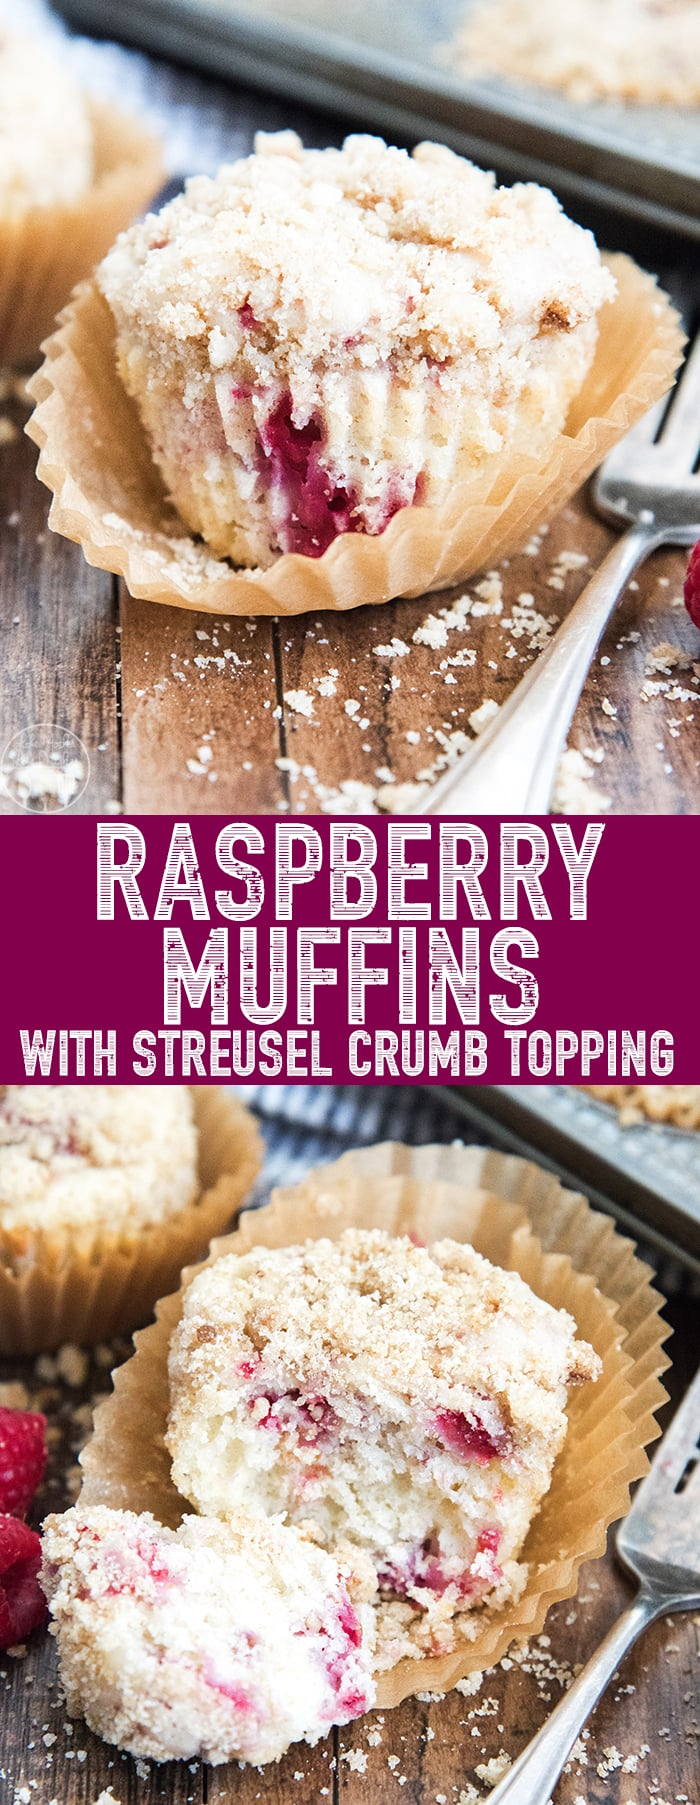 These Raspberry Muffins are sweet, moist, and soft; and are topped with the best sugary crumb topping! Perfect for breakfast, brunch, or a snack!